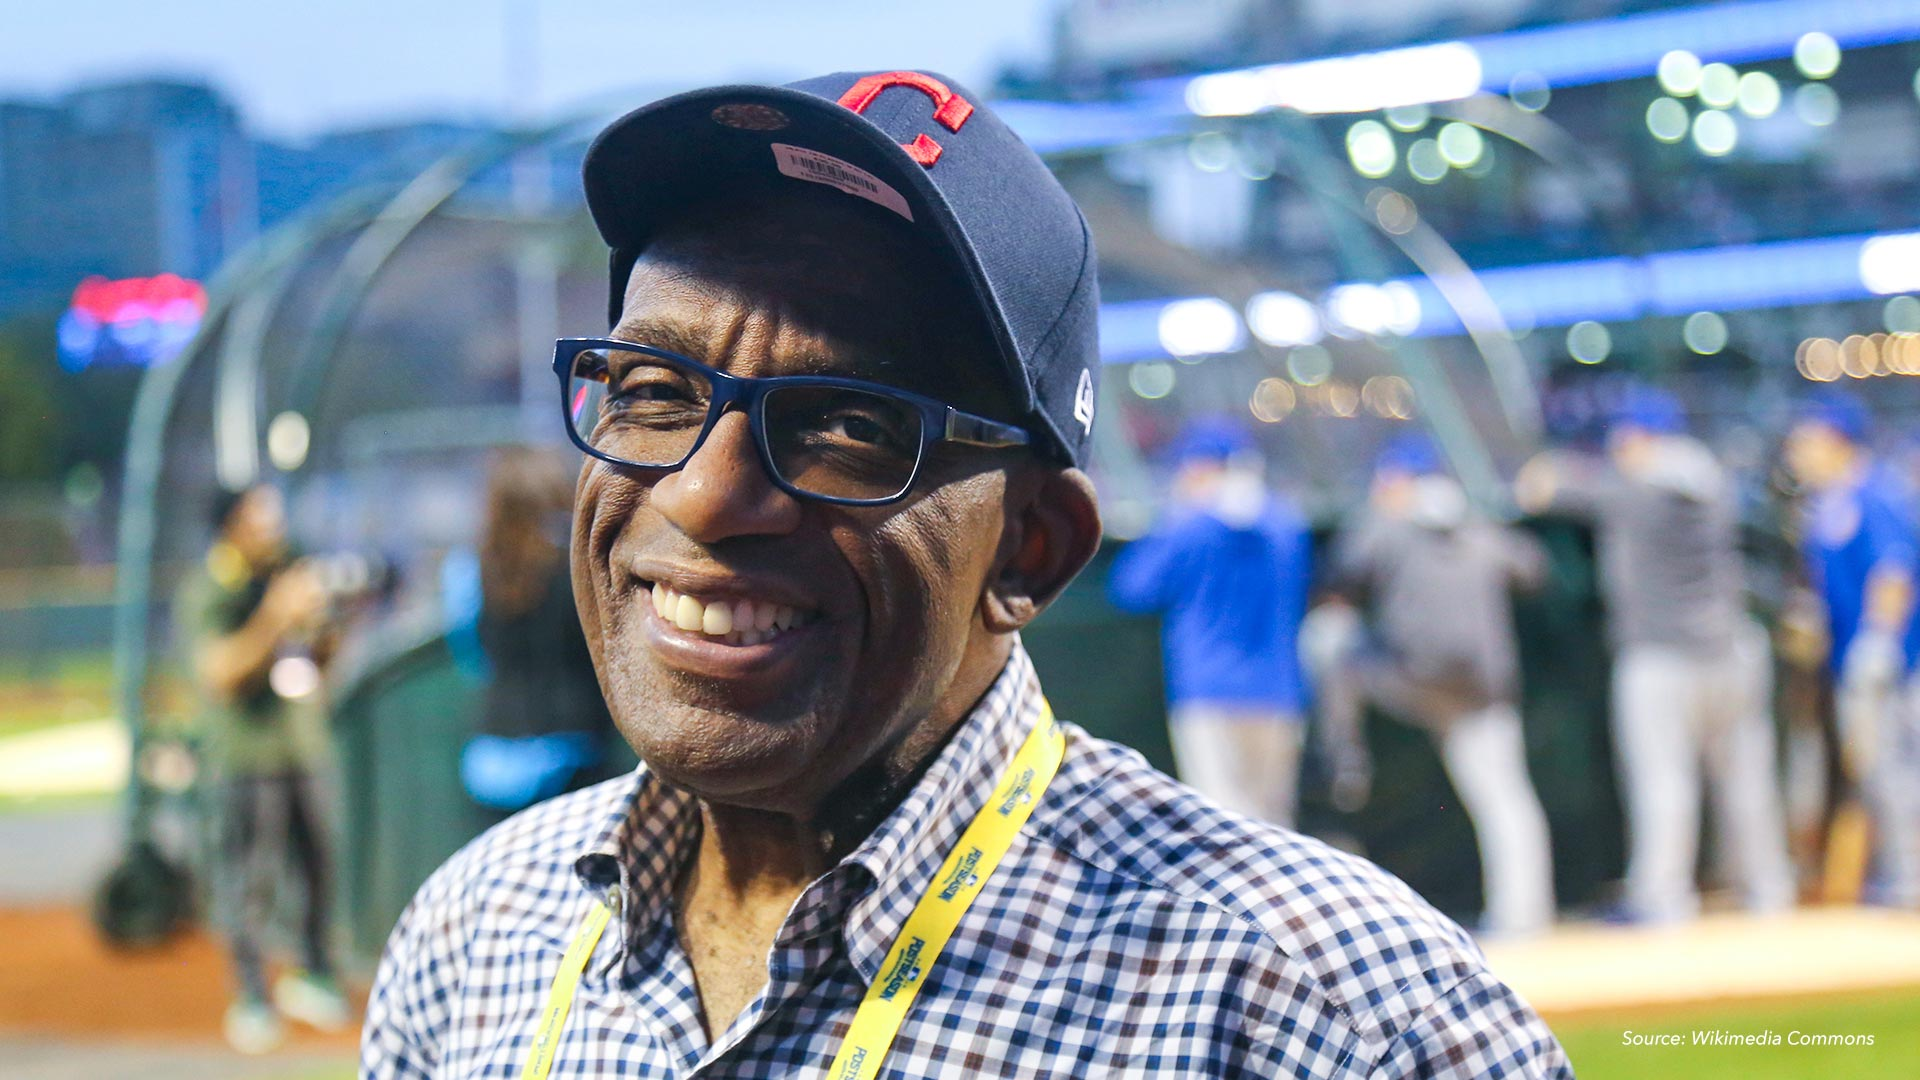 Al Roker's Prostate Cancer Diagnosis Prompts Question: When Did You Last Get Checked?